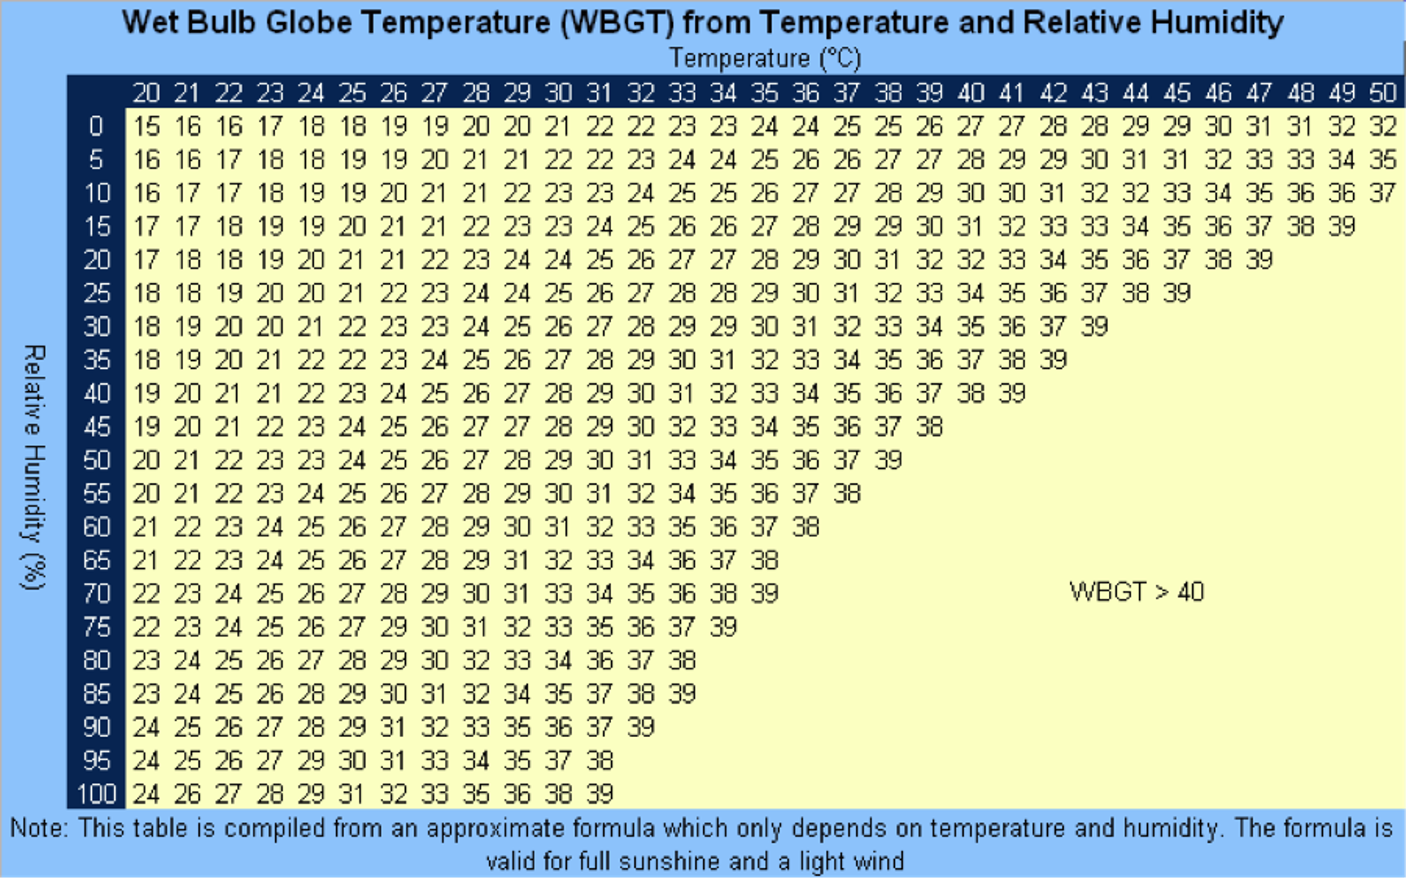 Wet bulb globe (WBGT) graph from temperature and relative humidty